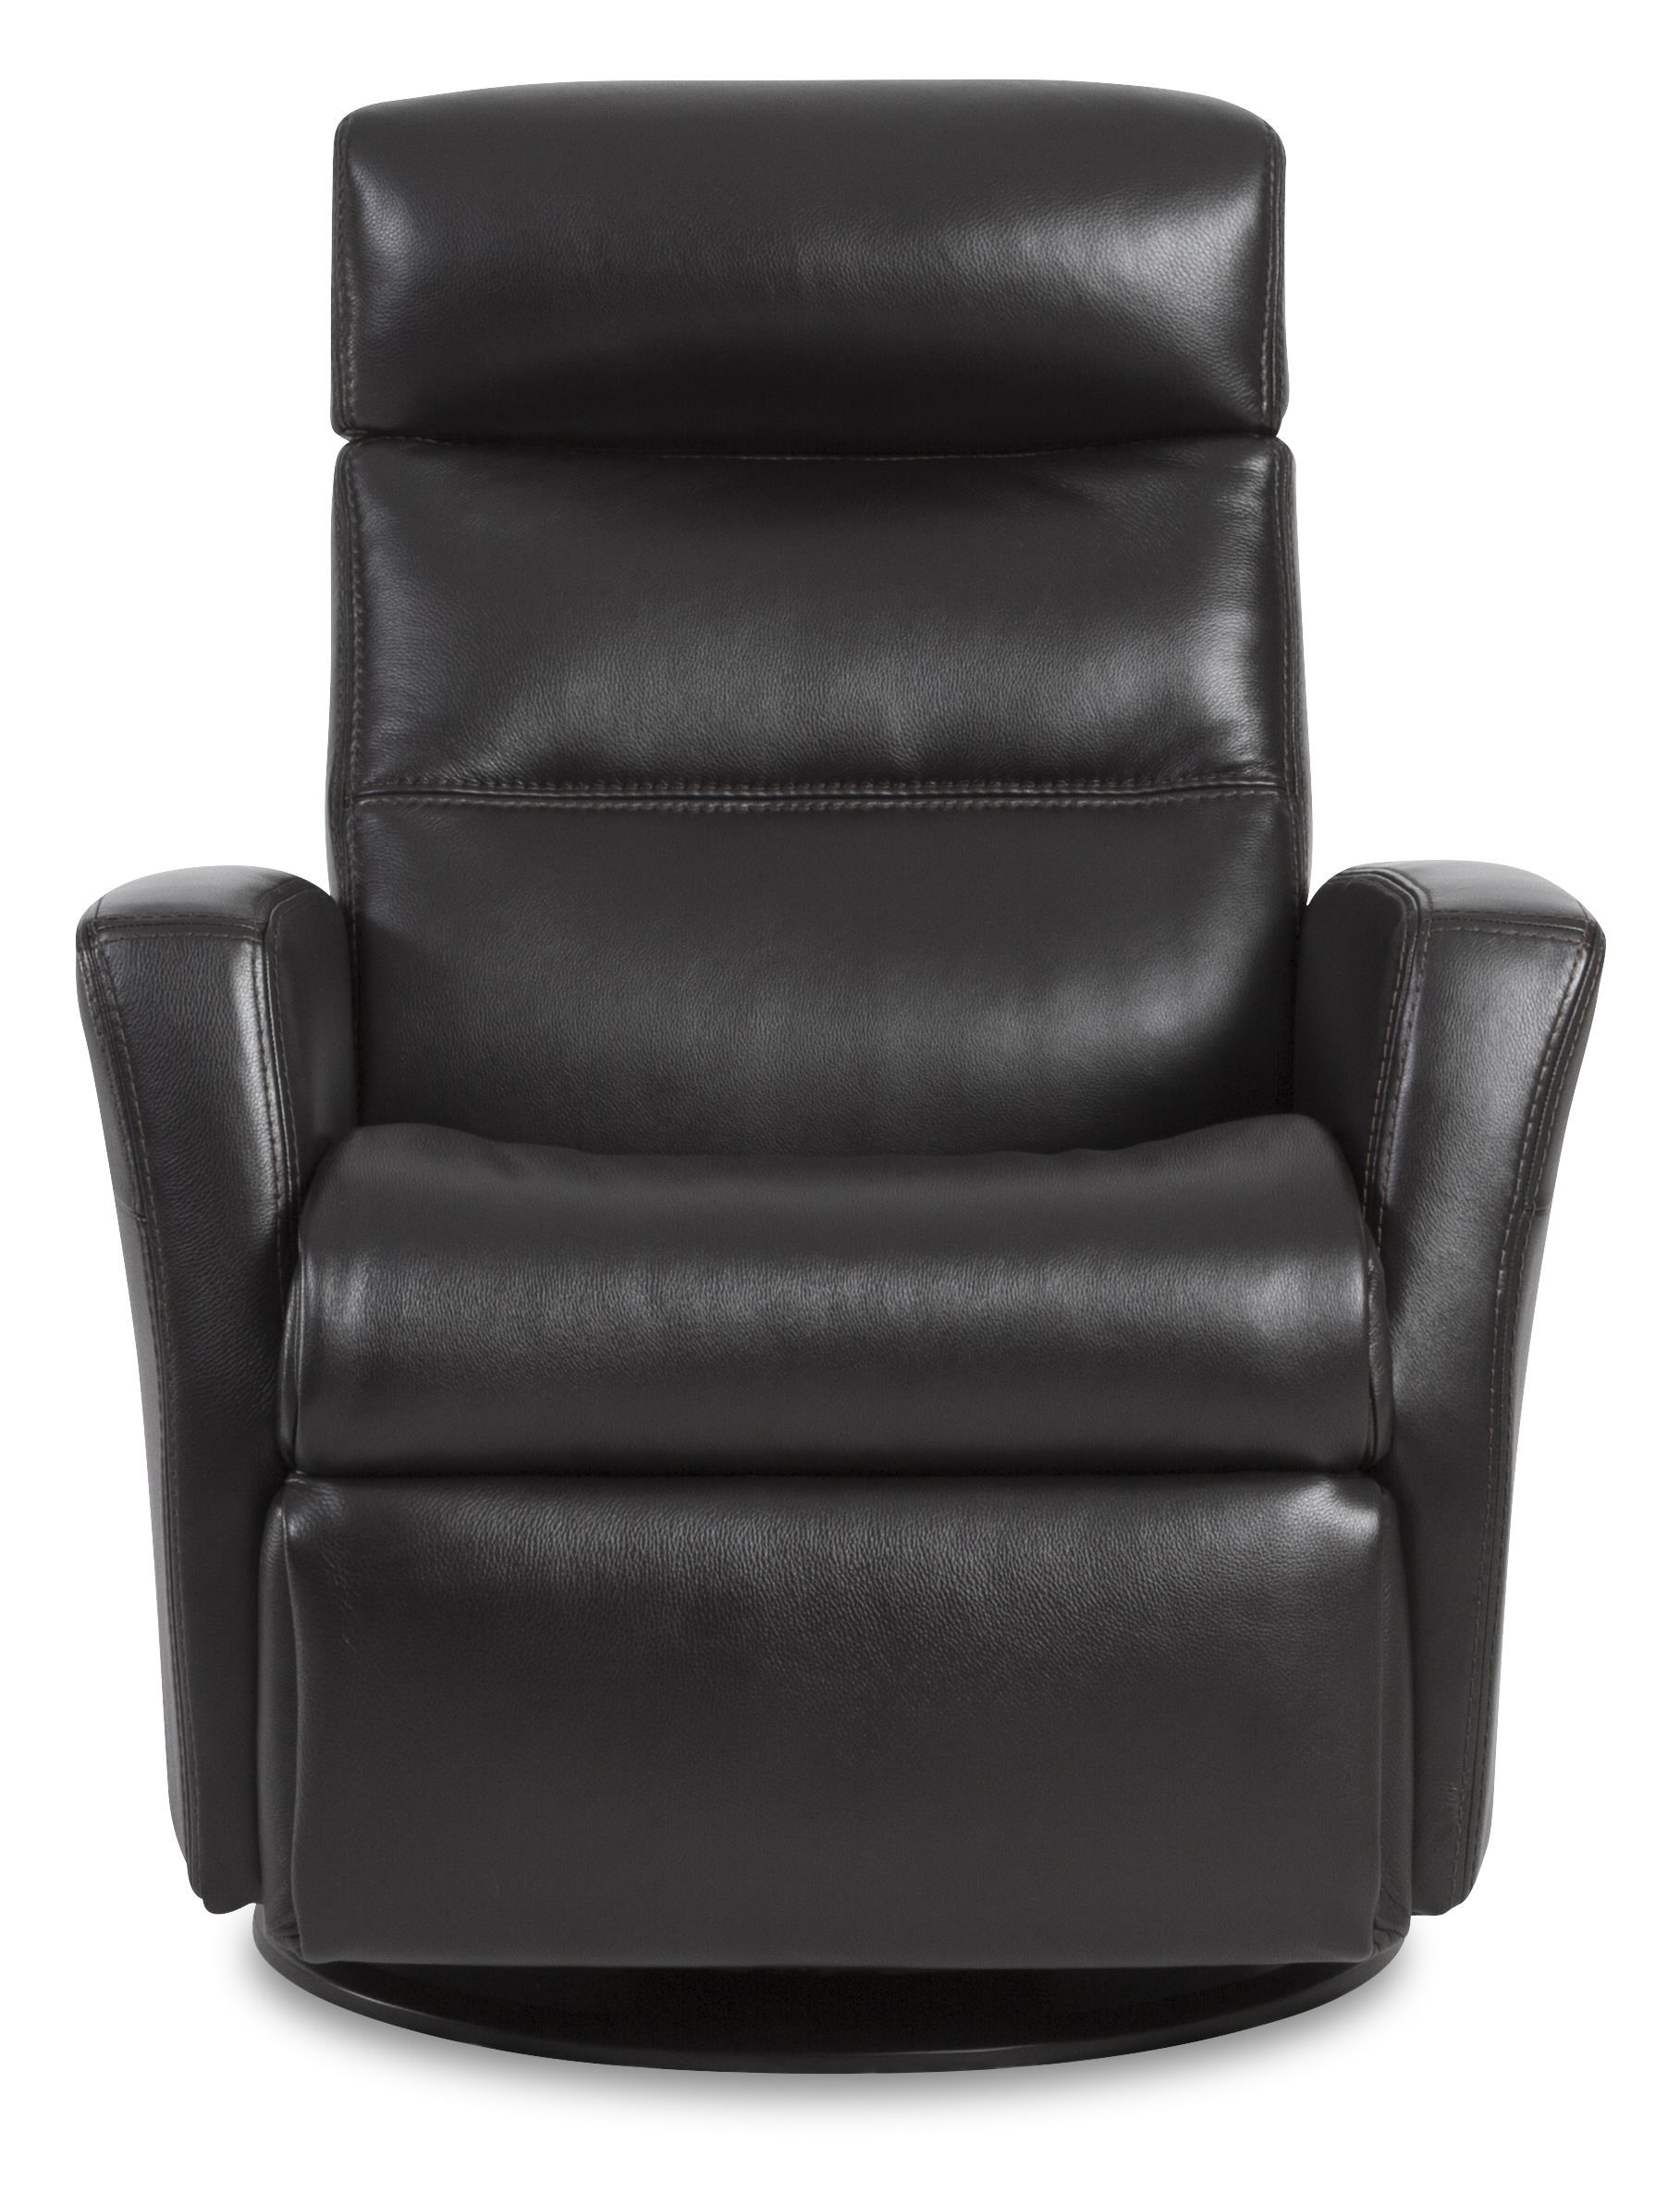 Divani Recliner Manuale Img Norway Divani Compact Size Manual Recliner With Swivel Glide